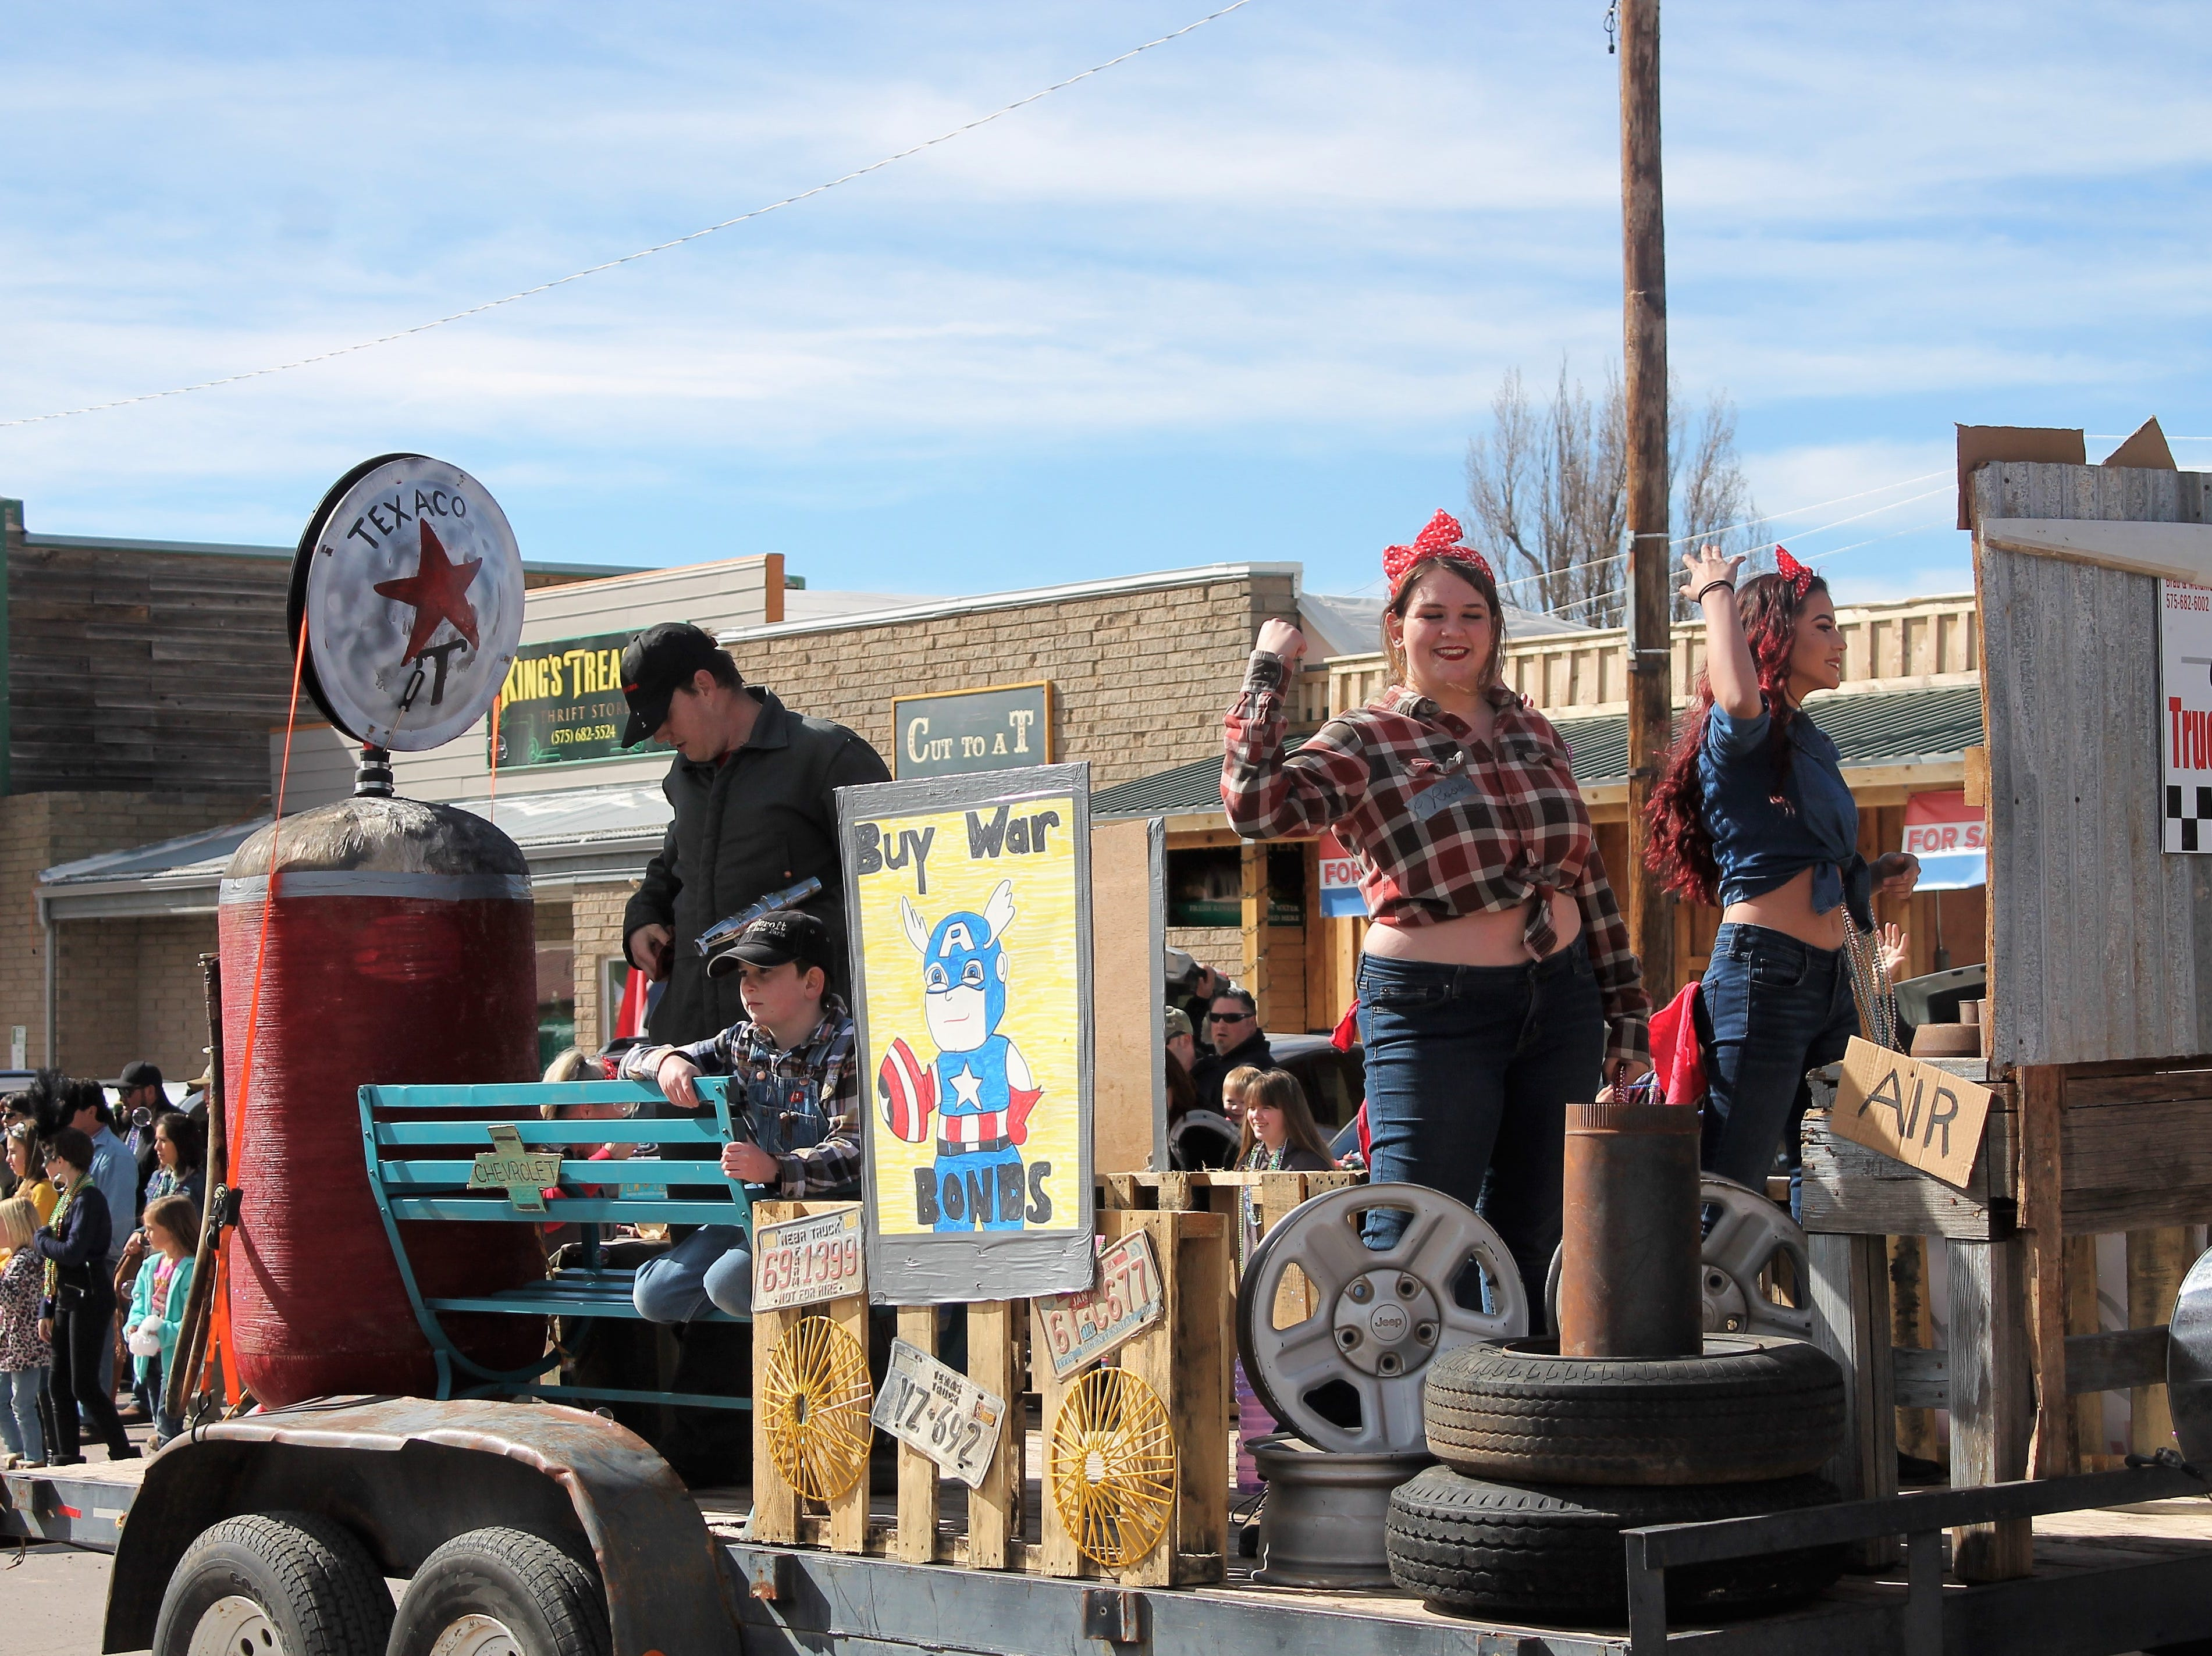 The Cloudcroft Truck and Auto Parts float featured Rosie the Riveters at the Mardi Gras Parade in Cloudcroft Saturday.